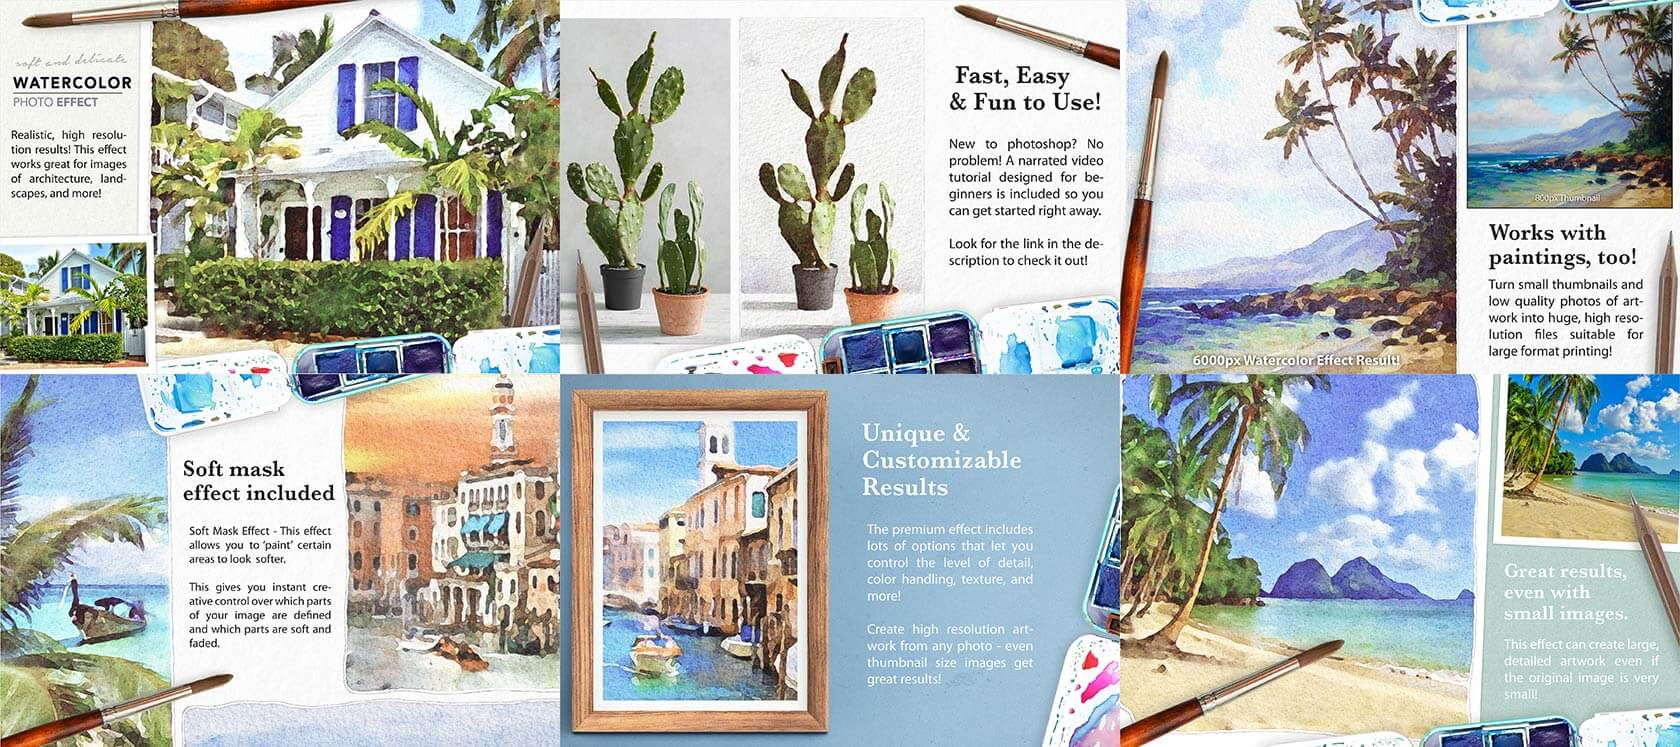 Soft-Watercolor-Photo-Effect-Kit-For-Photoshop-strip1